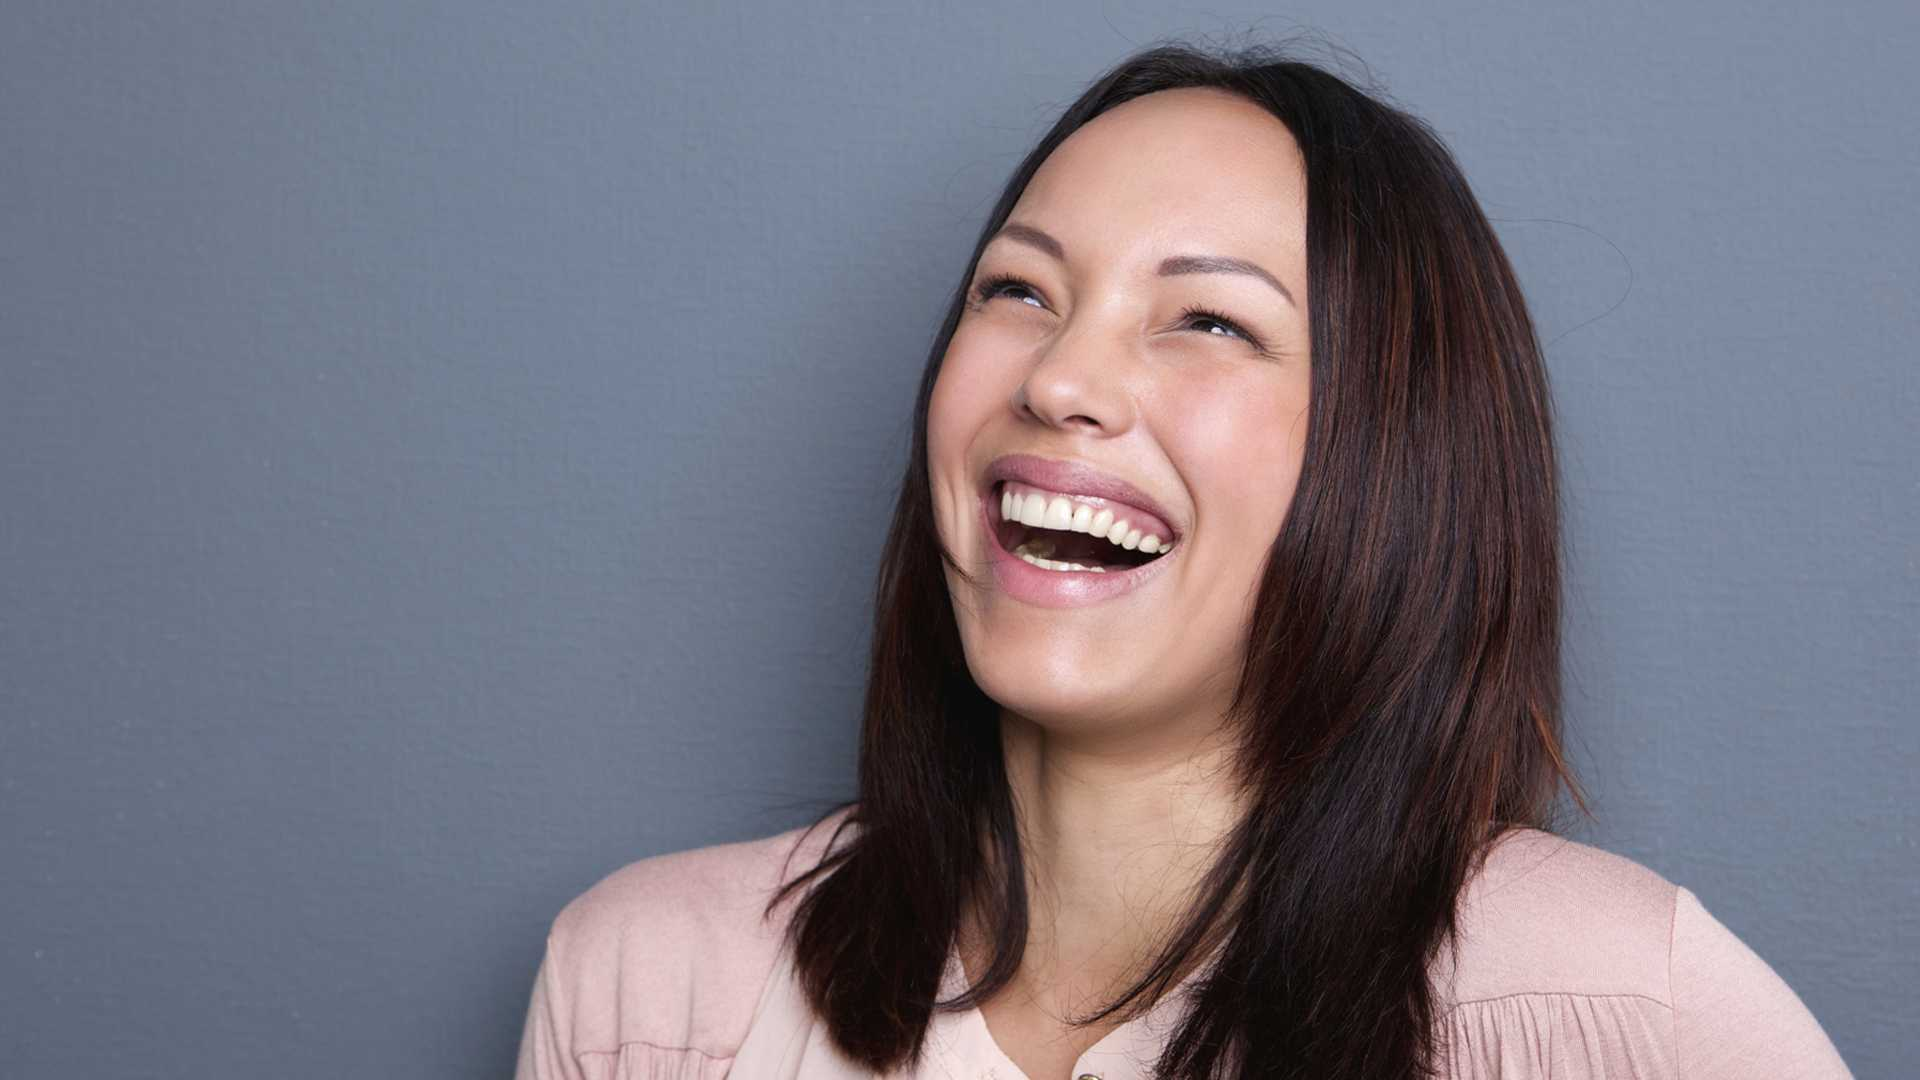 Science of Happiness: Here's the simple first step to becoming happier